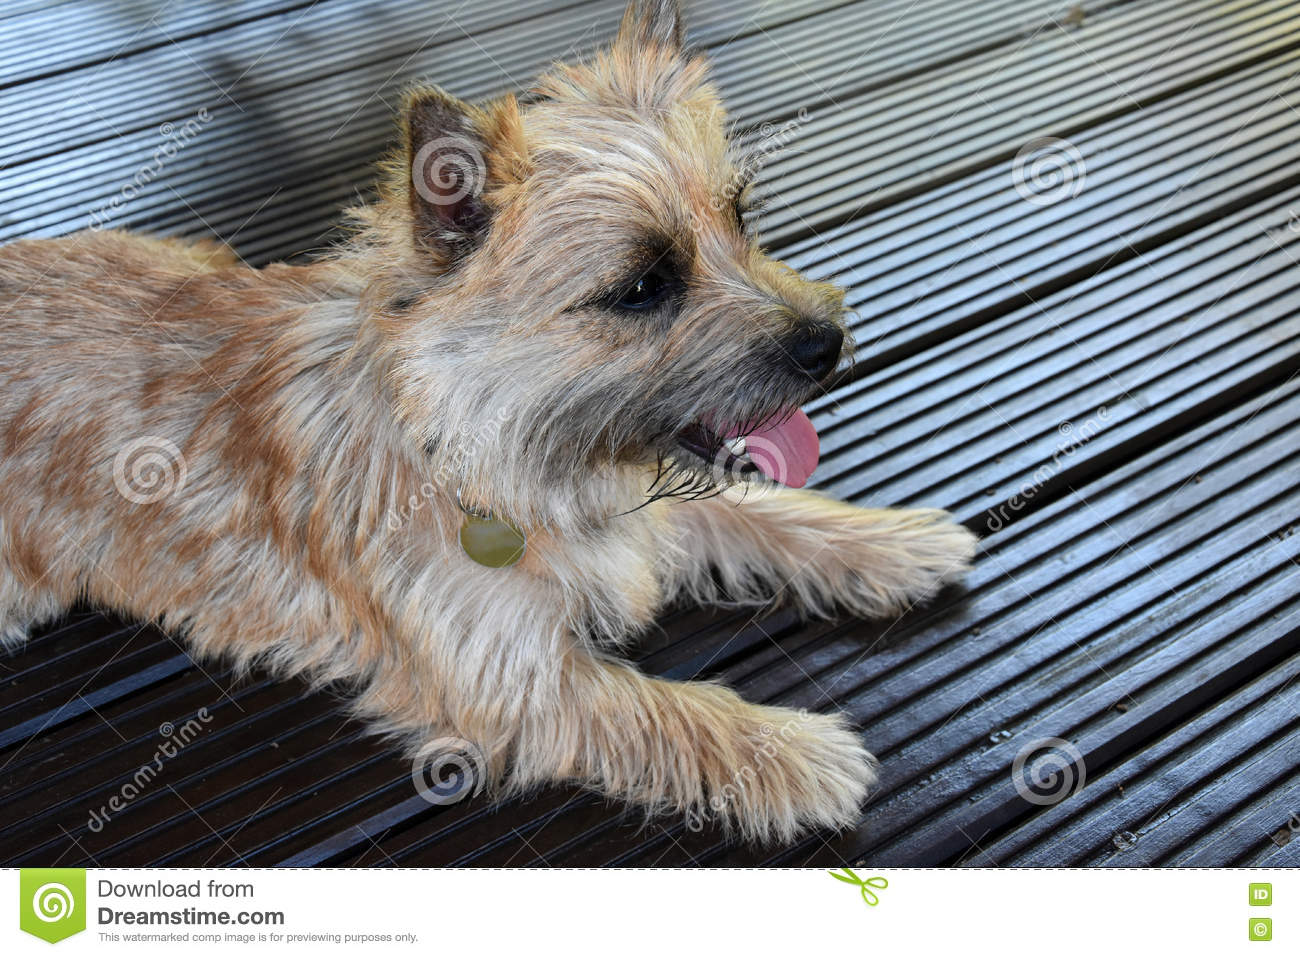 Cairn terrier stock image  Image of animal, mammals, canine - 71109915